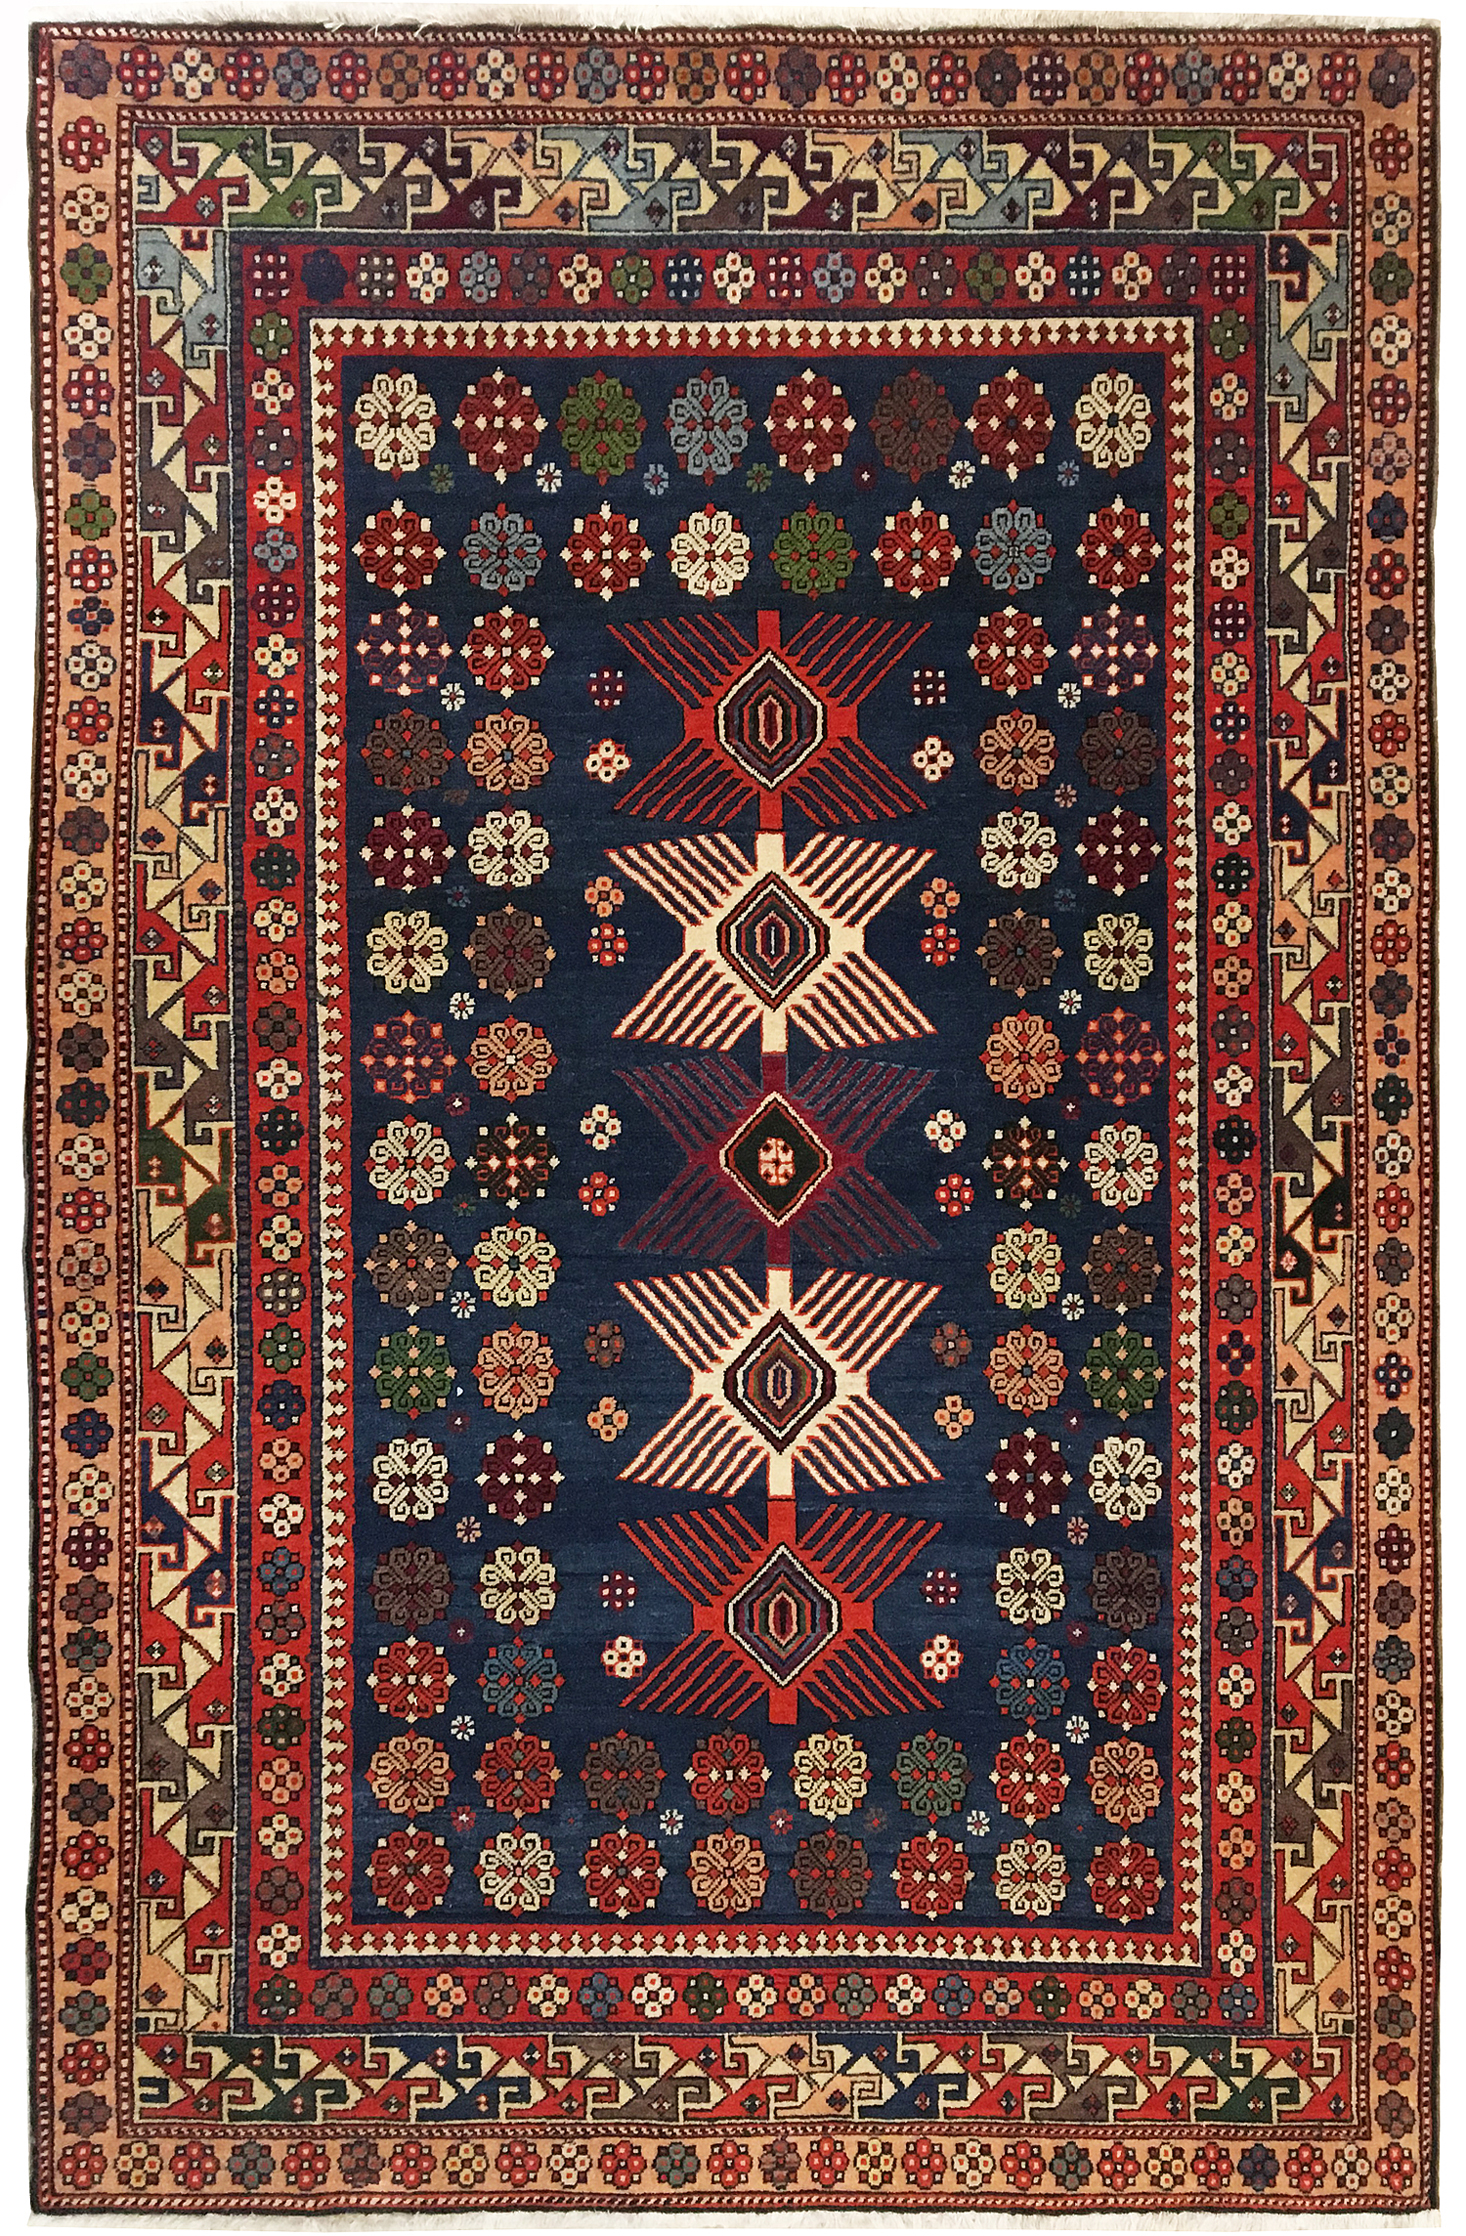 10_Antique_Caucasian_204cm_x_134cm_£4,750_01.jpg